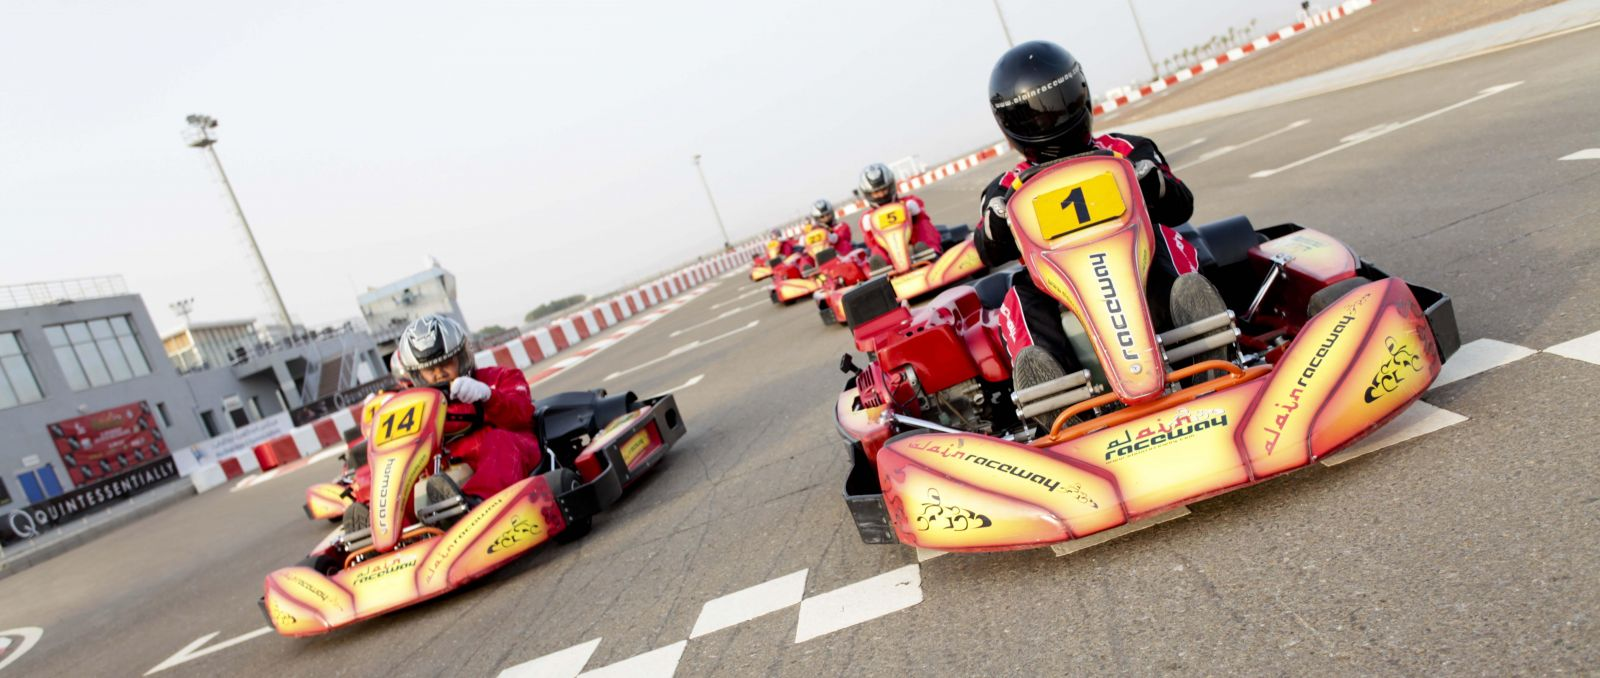 Aanbieding Karten Discount Karting At Al Ain Raceway During Summer